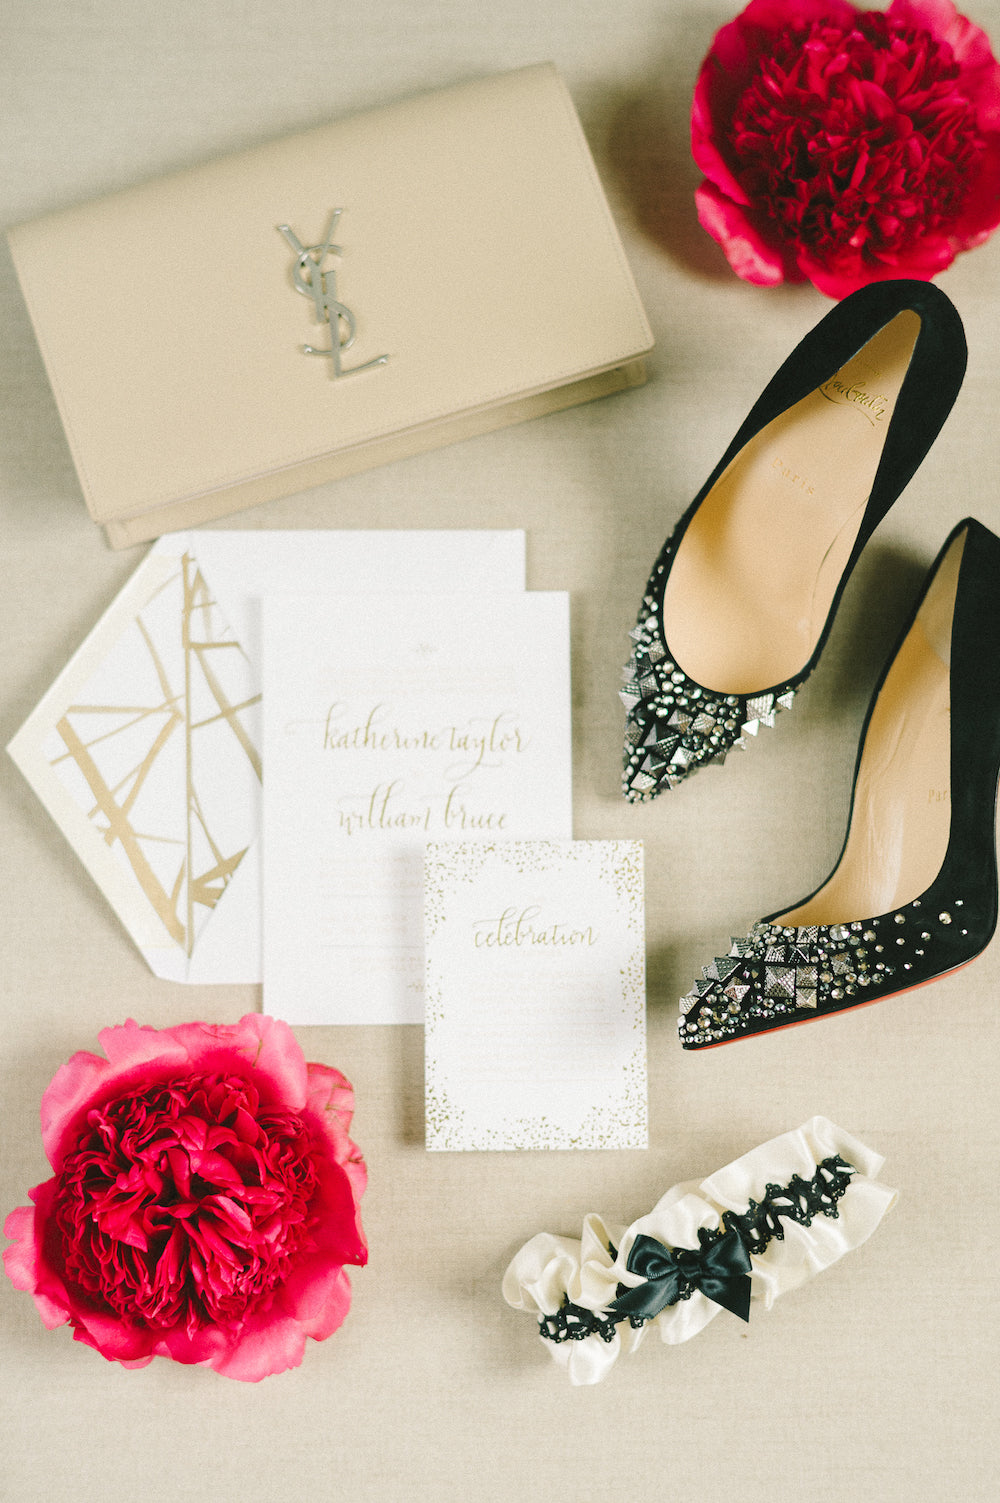 chic bridal accessories - advice for 2 months before wedding - The Garter Girl